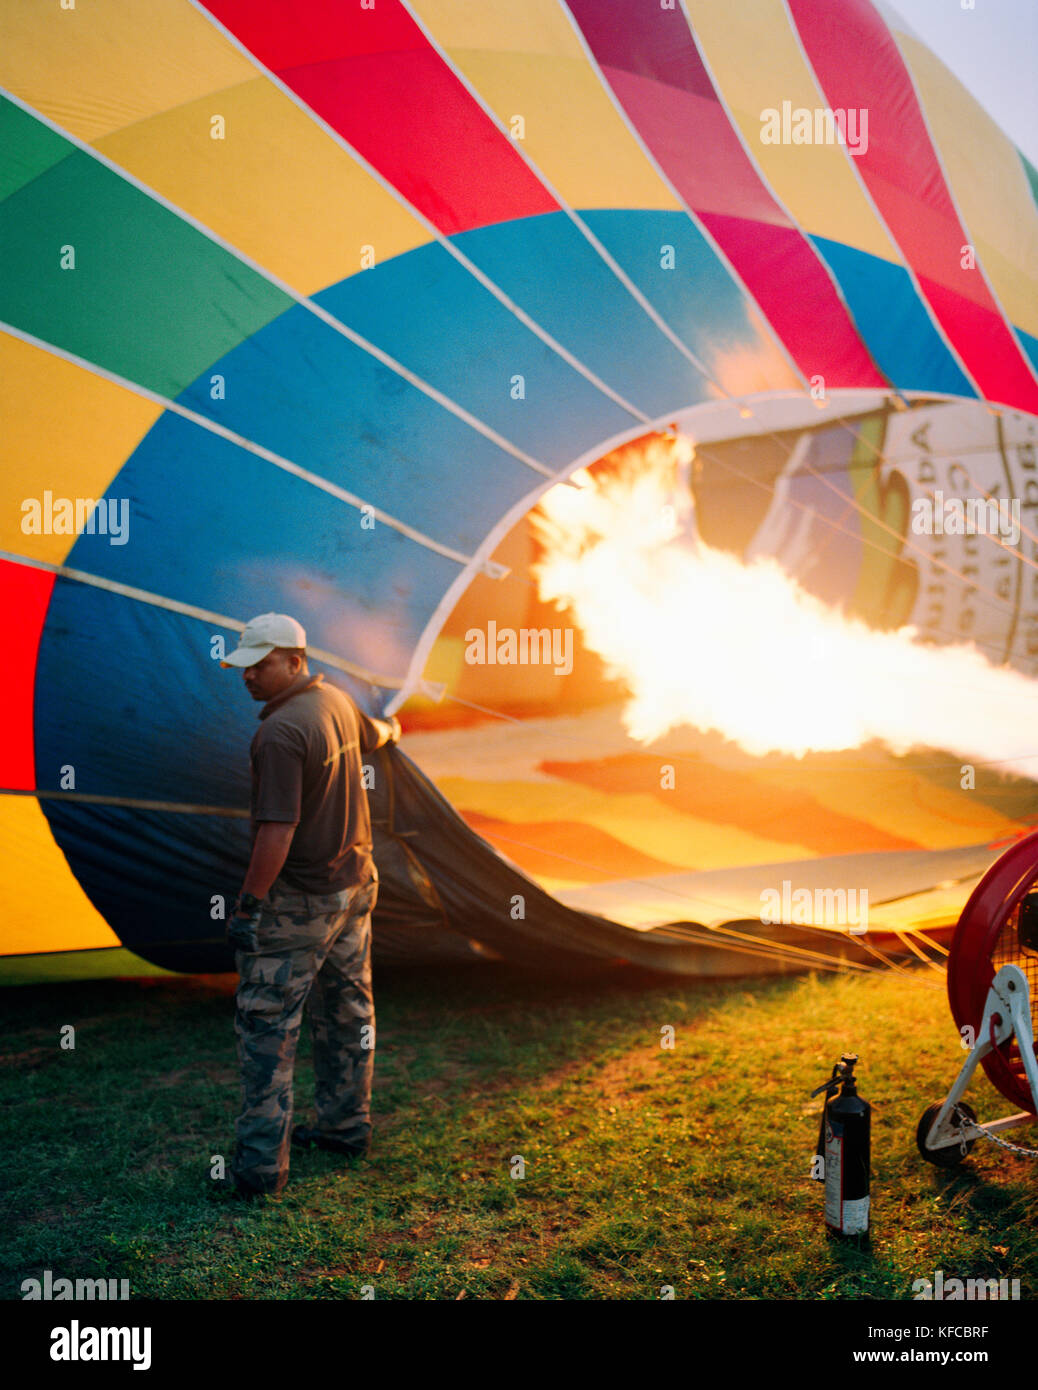 SRI LANKA, Asia, man operating a flame to fill a hot-air balloon - Stock Image